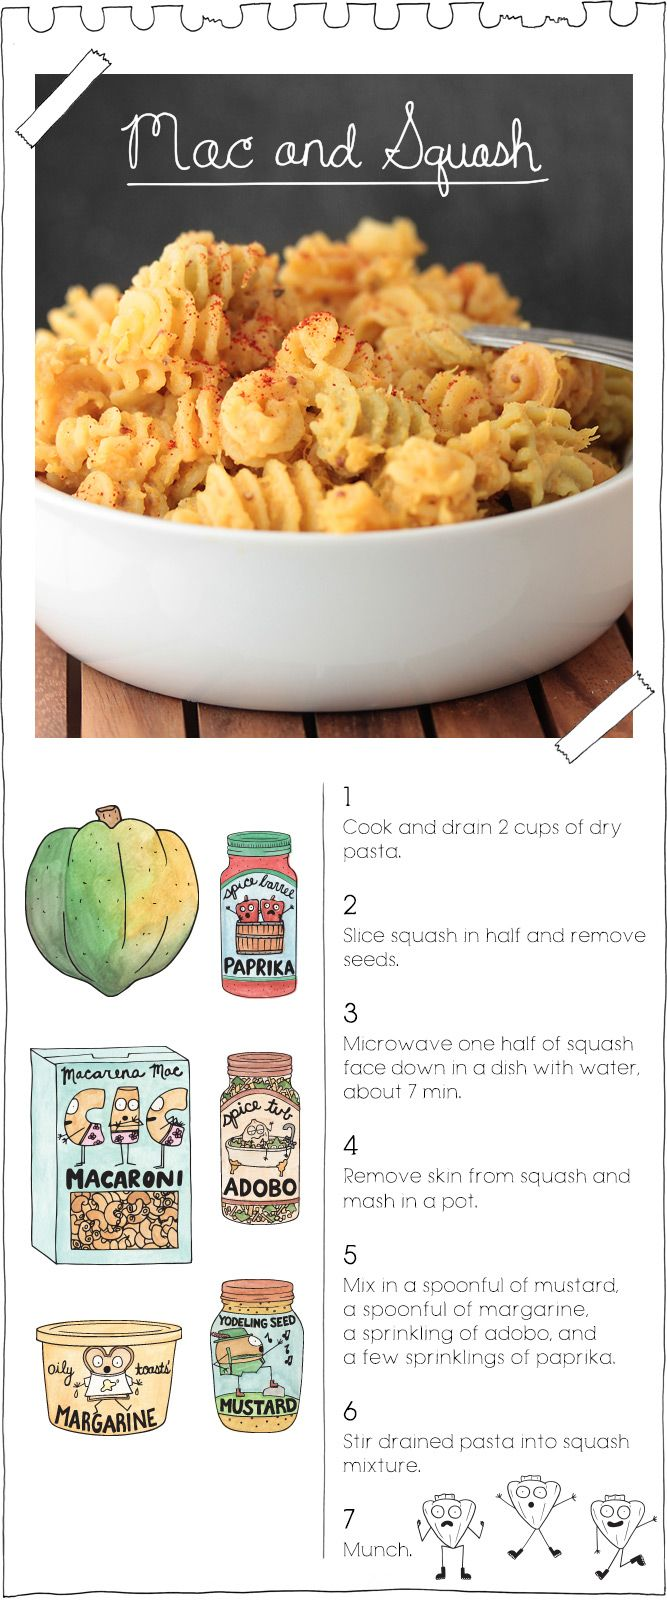 this website is SO CUTE. and look, the only ingredients are pasta, squash, mustard, margarine, adobo, and paprika. whuuuut.